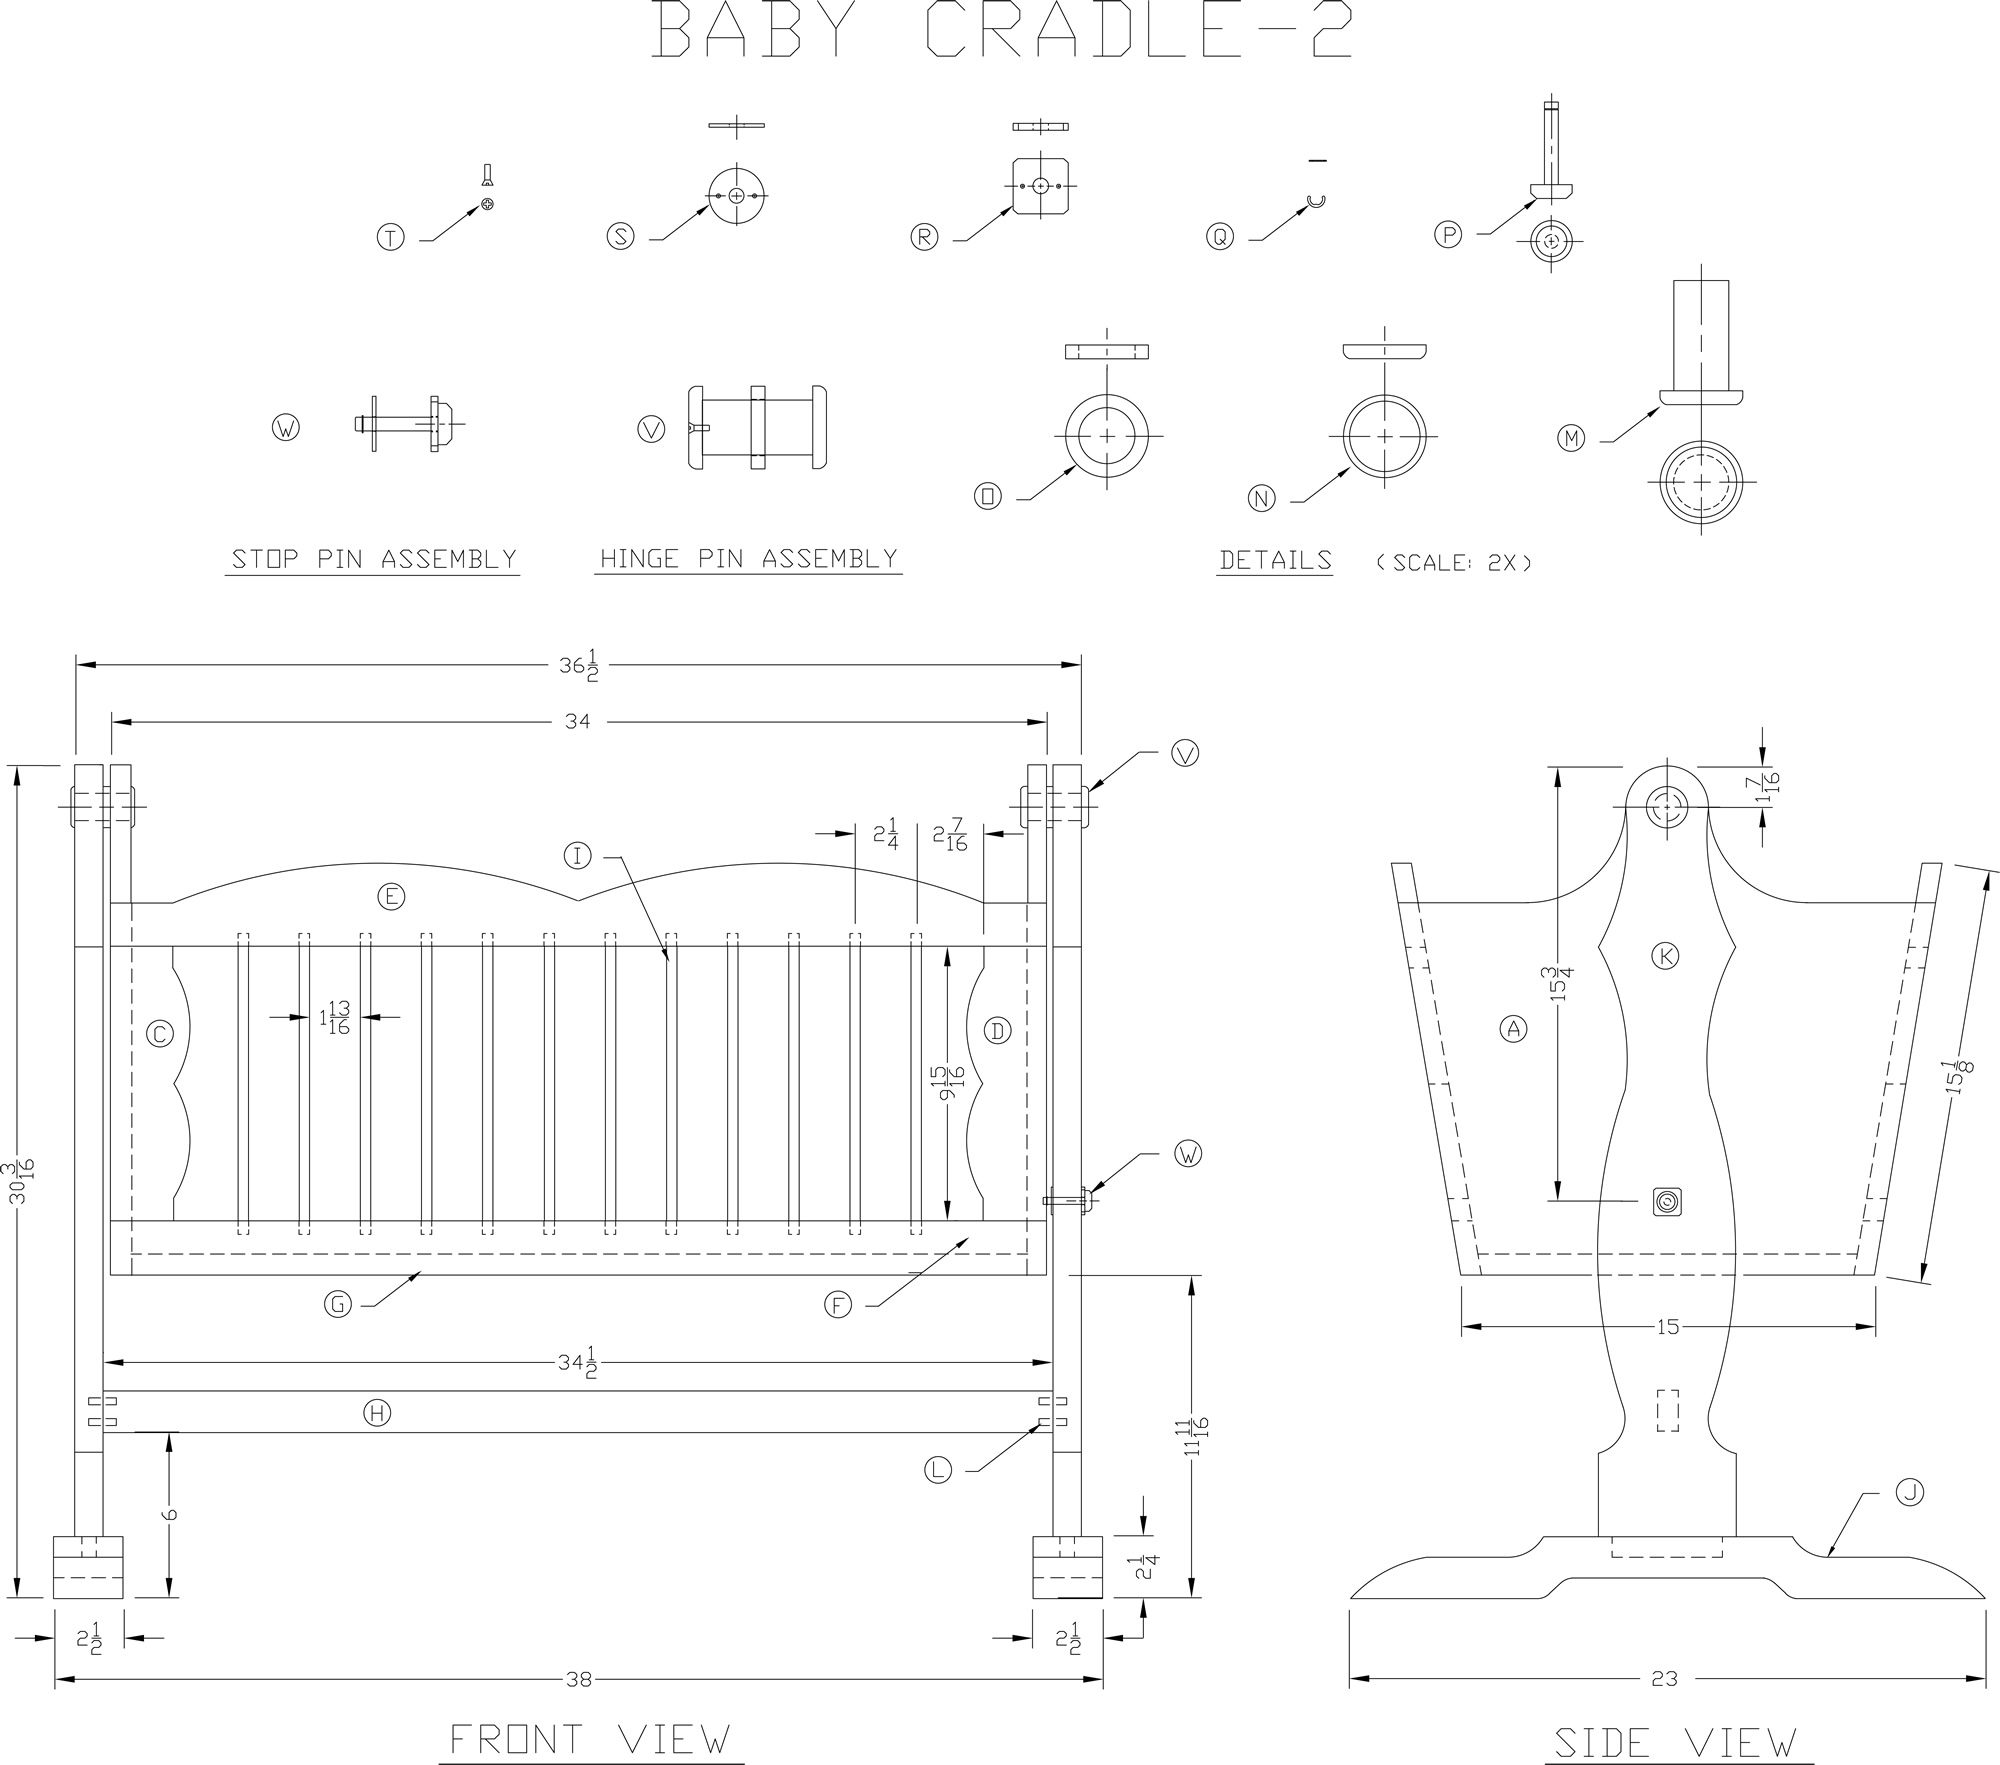 Baby Cradle Dimensions Wooden Baby Cradle Modified Plan Woodworking Plans From